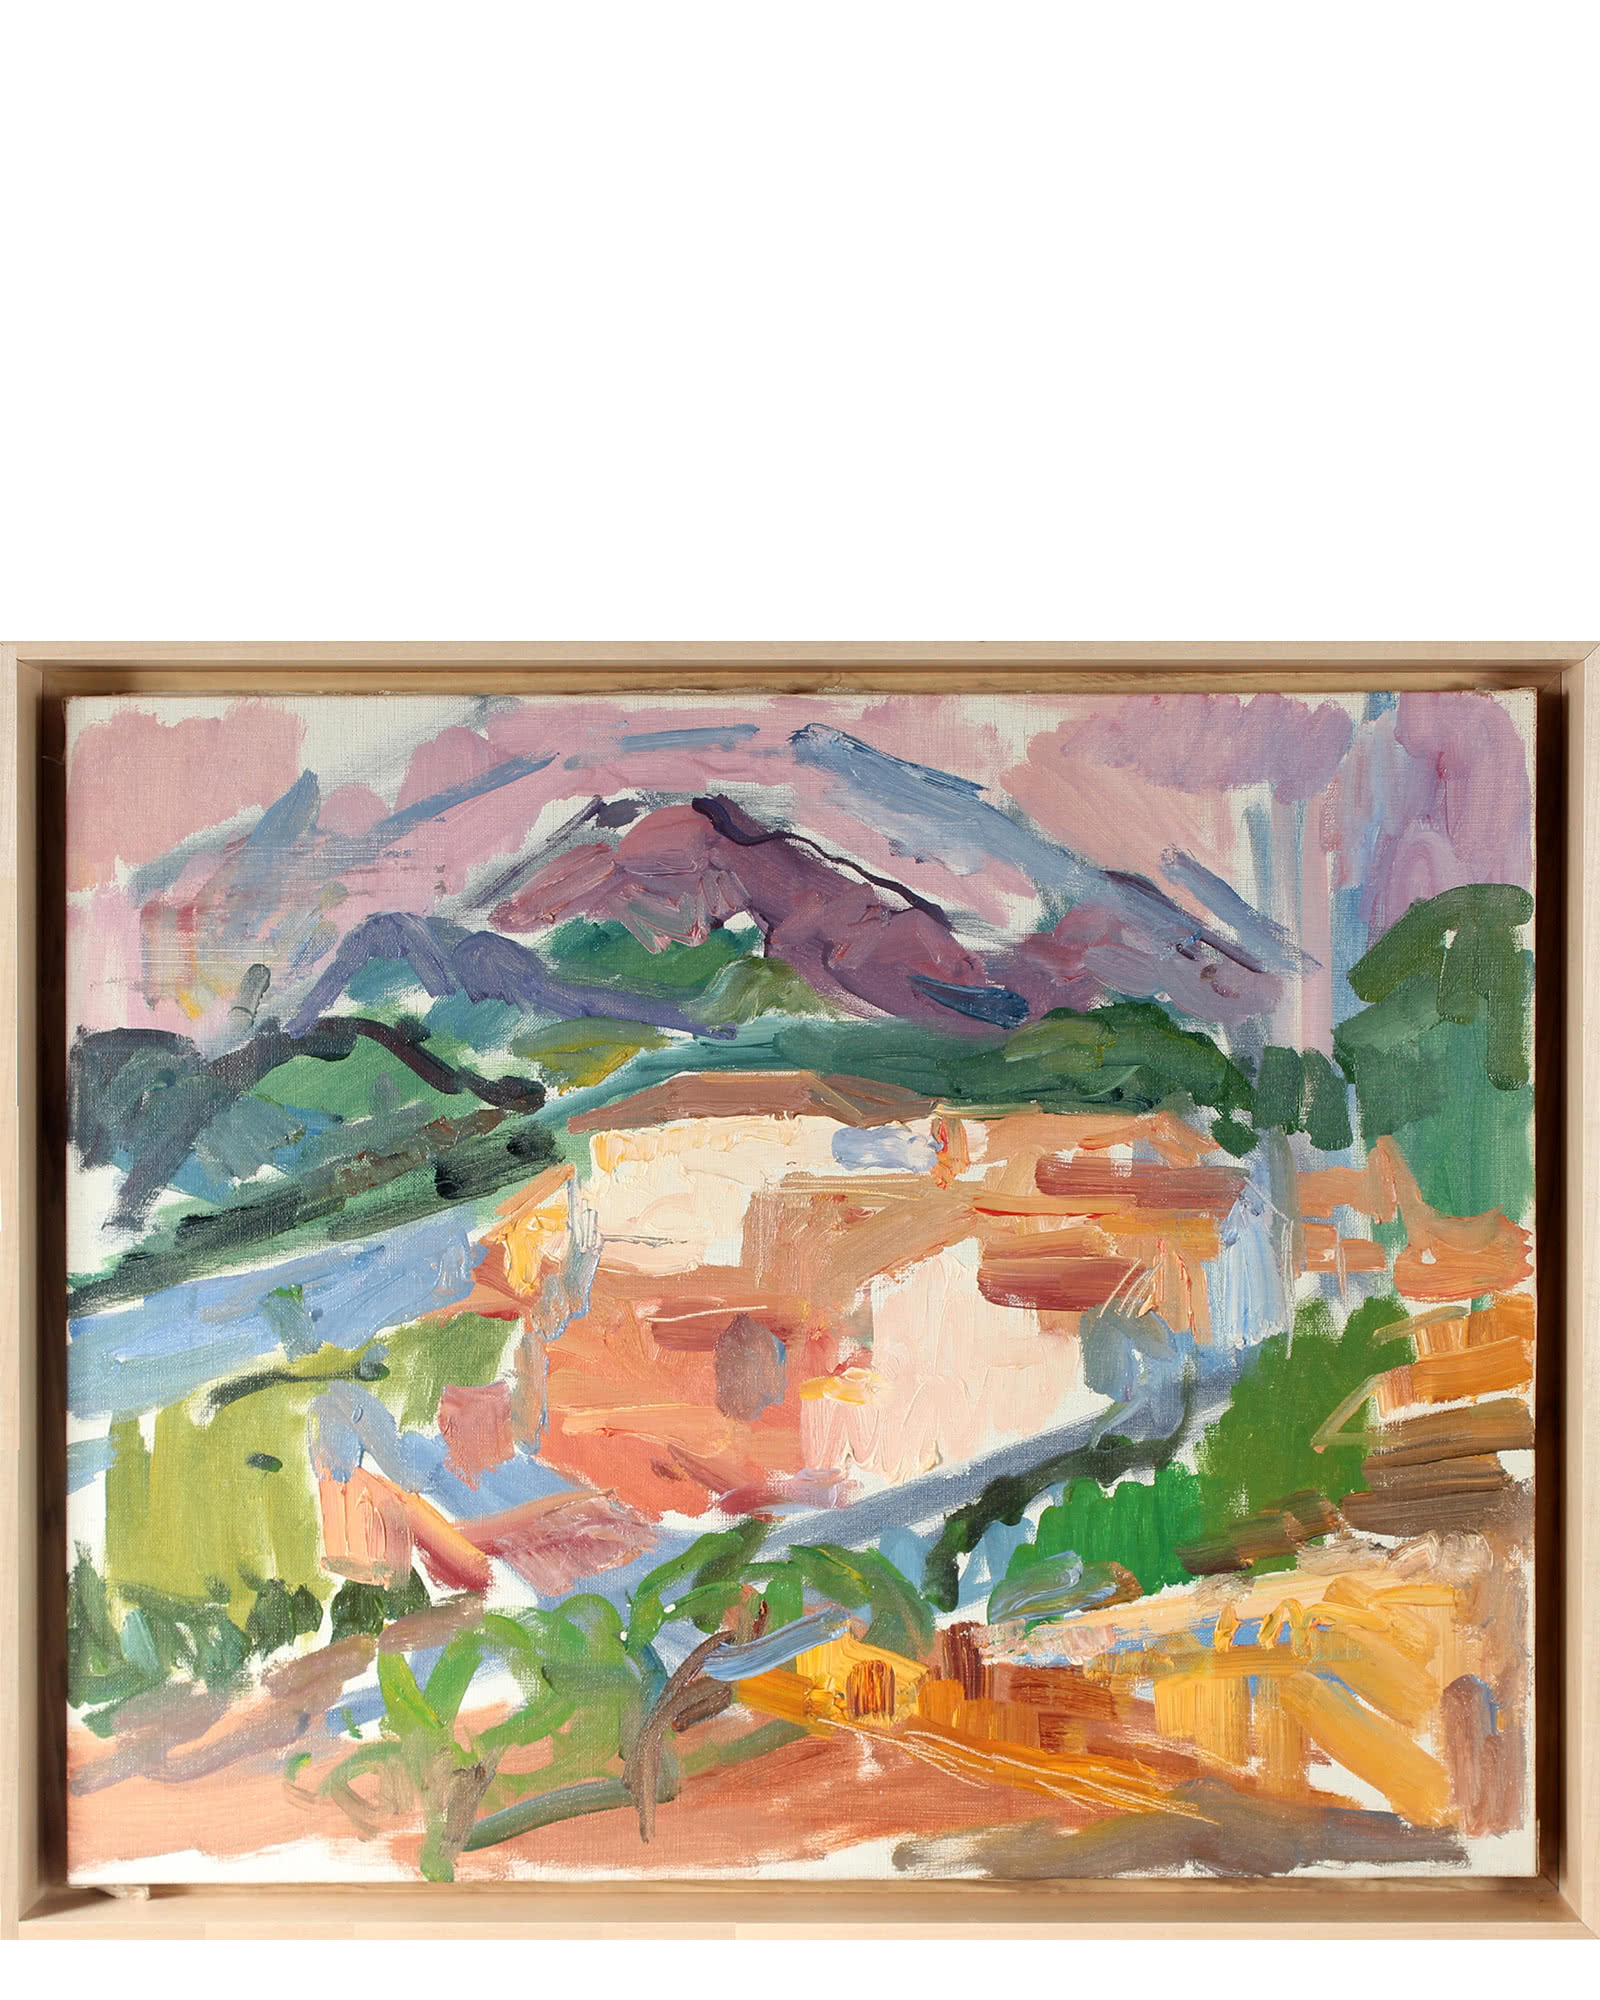 Abstracted Landscape by Gerald Wasserman